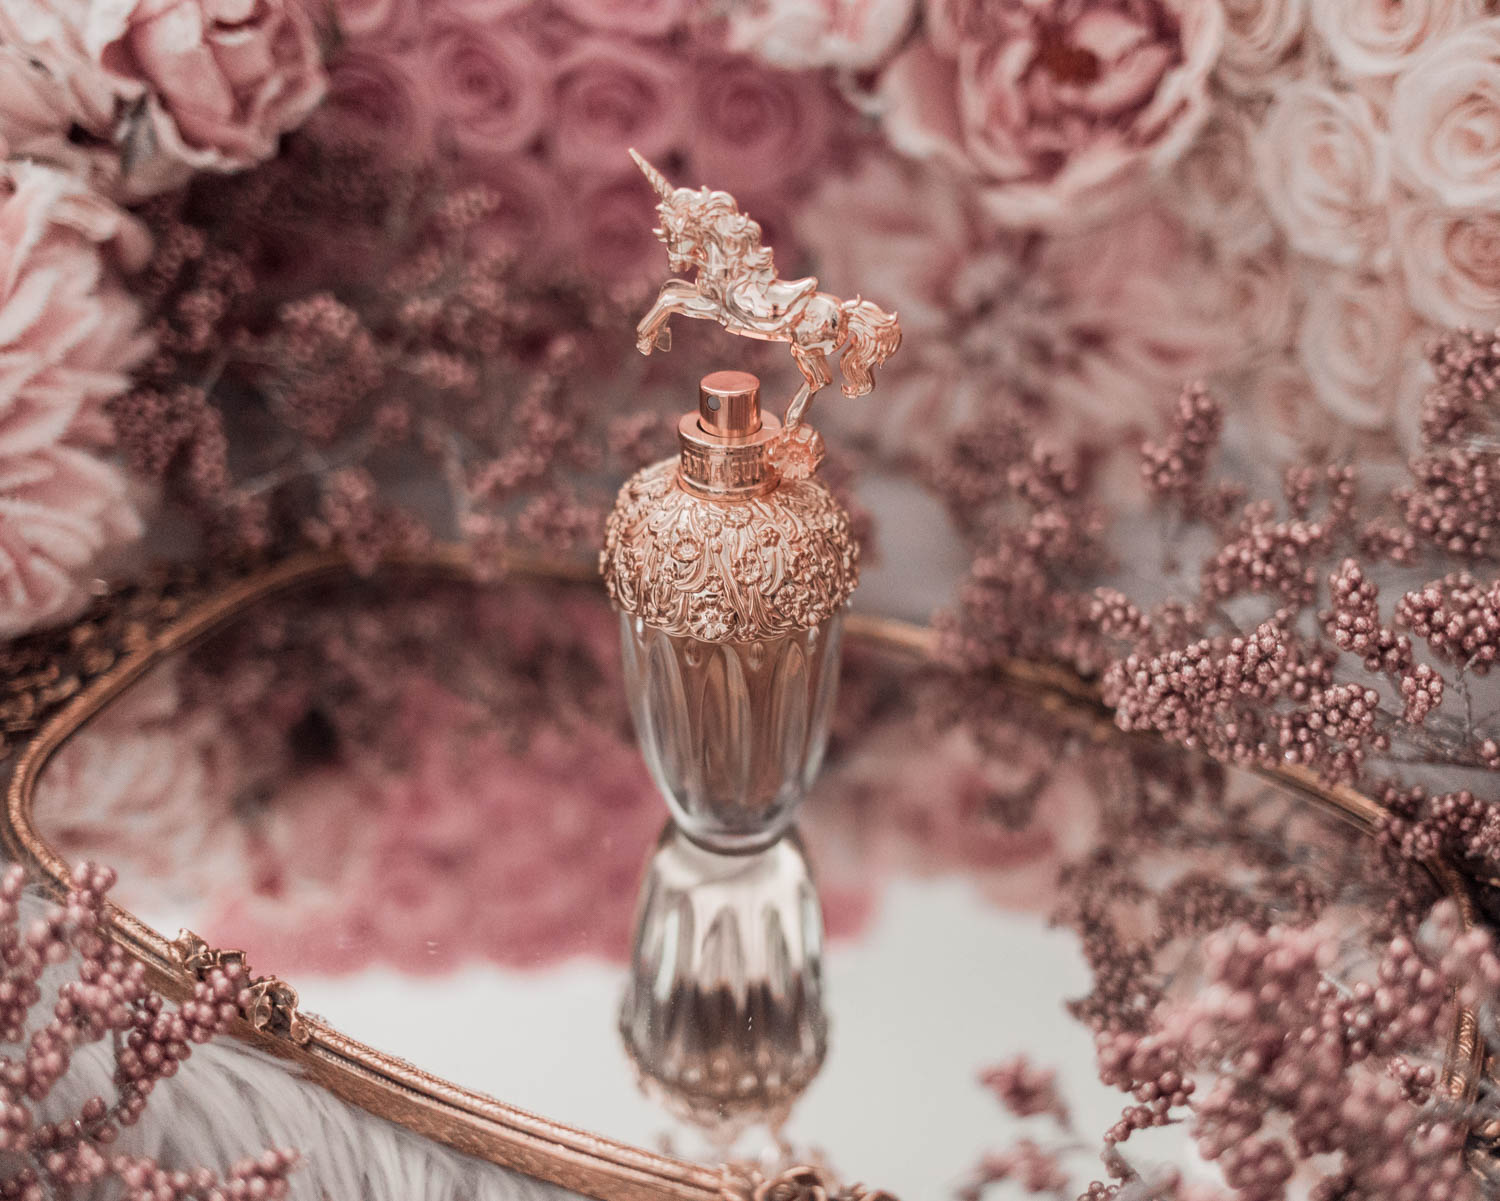 Feminine fashion blogger Elizabeth Hugen of Lizzie in Lace shares the best feminine perfumes and her girly fragrance collection including Anna Sui Fantasia